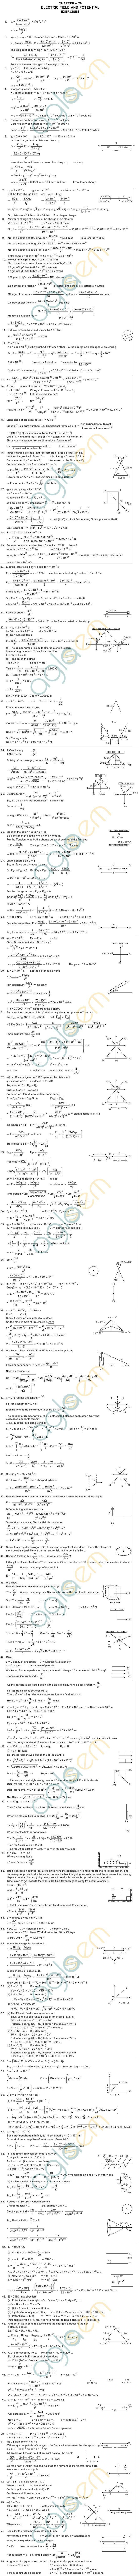 HC Verma Solutions: Chapter 29 - Electric field and potential